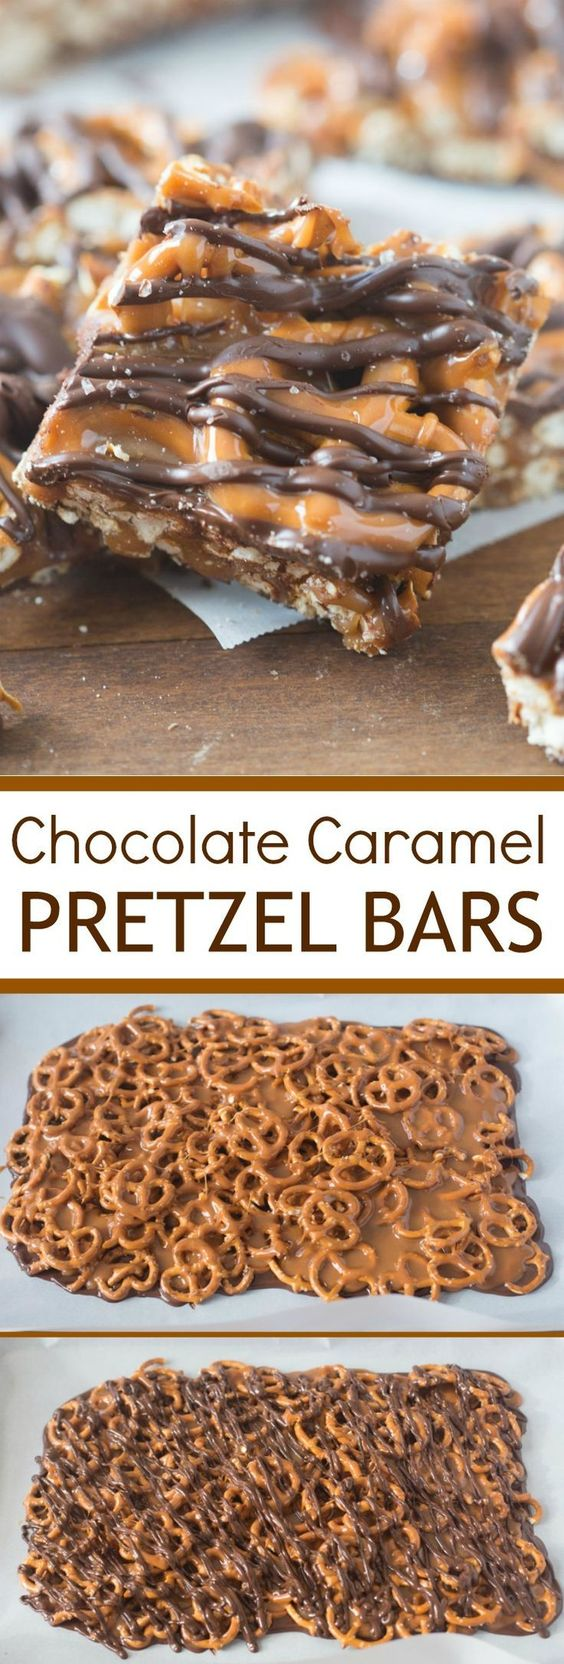 4-ingredient Salted Chocolate Caramel Pretzel Bars Recipe via Tastes Better From Scratch - These simple, 4-ingredient Salted Chocolate Caramel Pretzel Bars will quickly become your new favorite sweet and salty treat! No bake and no candy thermometer needed. #dessertbars #cookiebars #barsrecipes #dessertforacrowd #partydesserts #christmasdesserts #holidaydesserts #onepandesserts